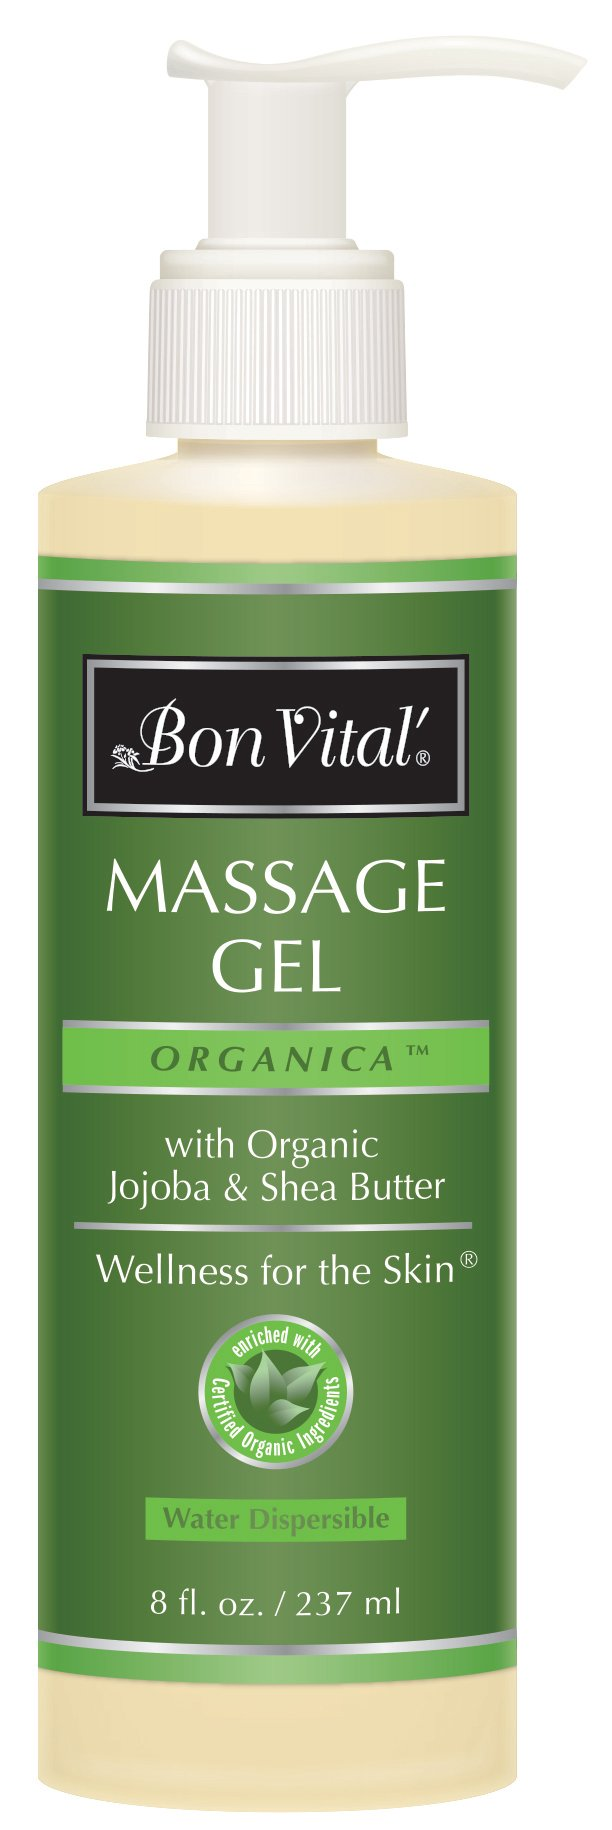 Bon Vital' Organica Massage Gel Made with Certified Organic Ingredients for Earth-Friendly and Relaxing Massage, Moisturizer for Natural Massage that Hydrates and Softens Skin, 8 Oz Bottle